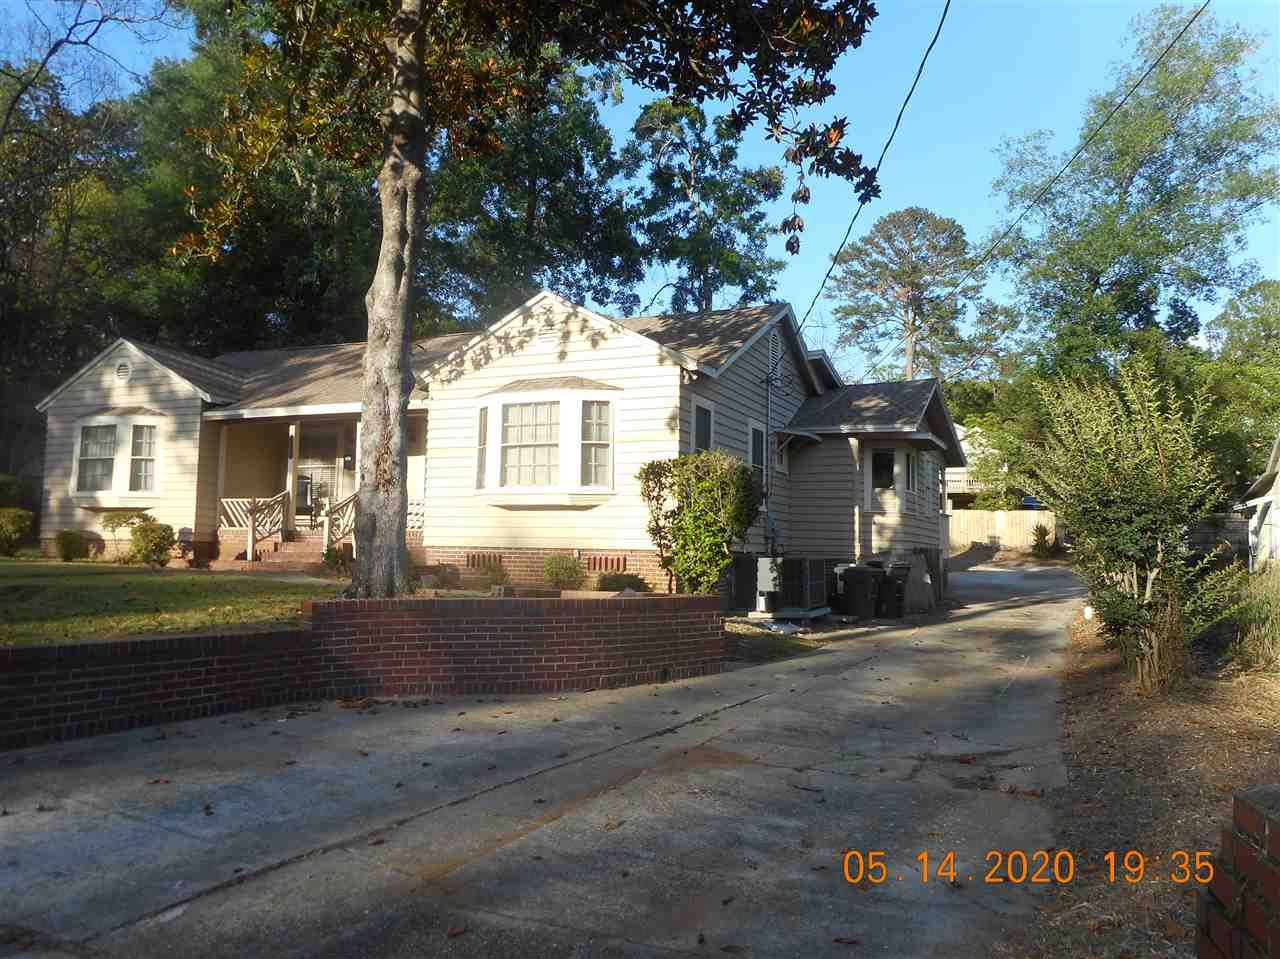 Photo of 407 Talaflo Street, TALLAHASSEE, FL 32308-4934 (MLS # 320280)